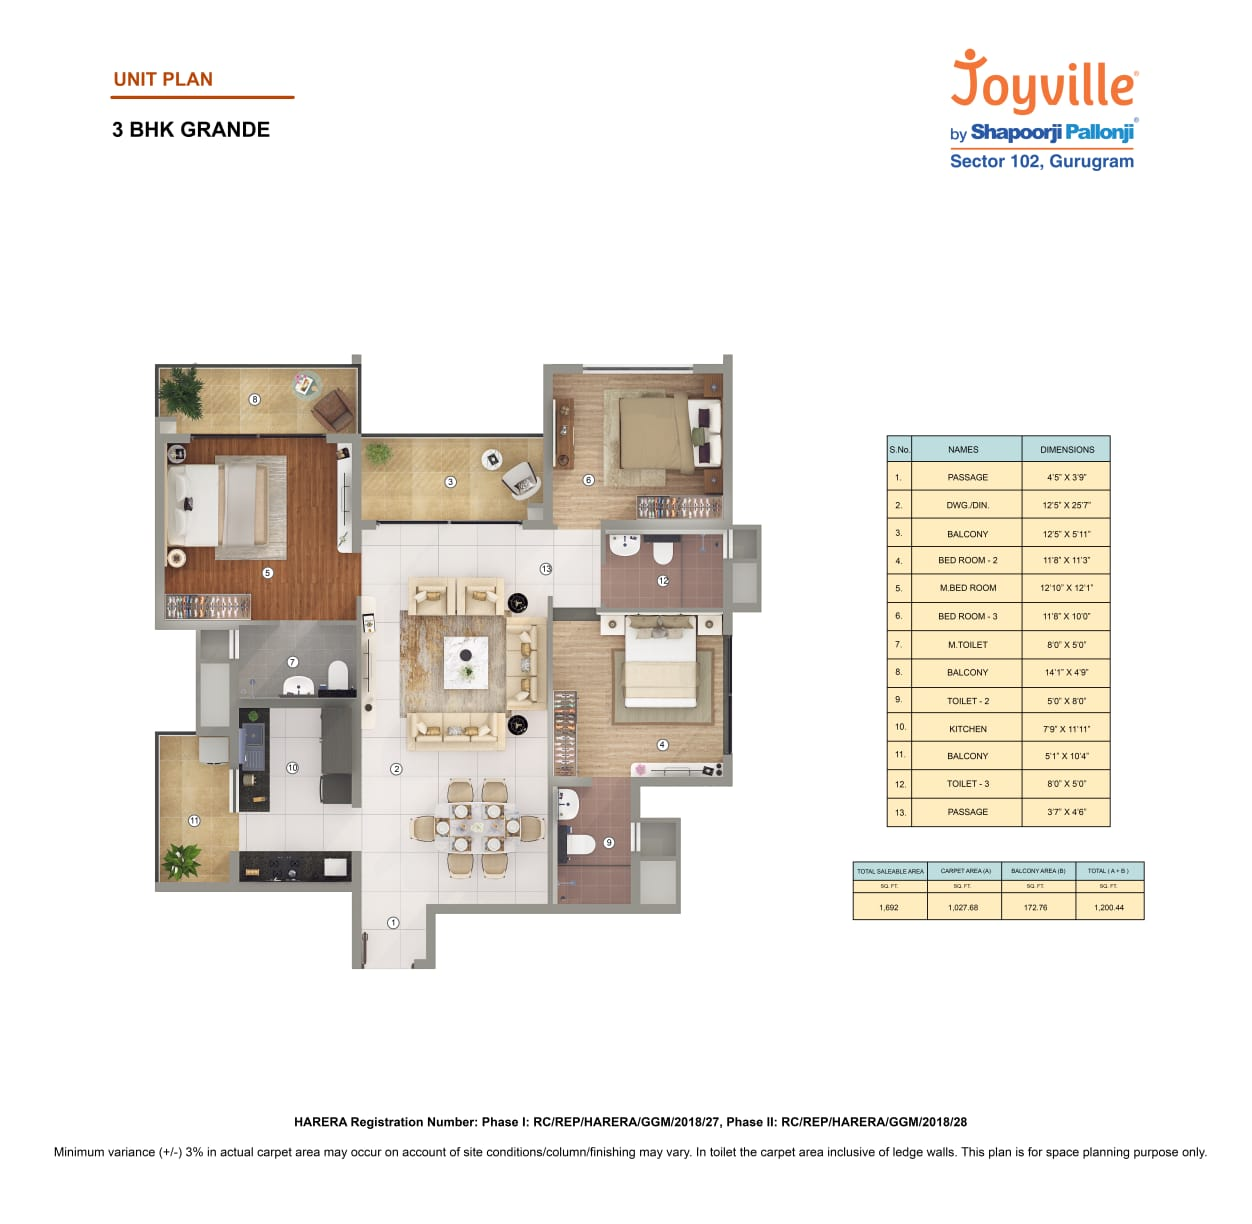 Joyville Floor Plan 3BHK Grande Area-1692